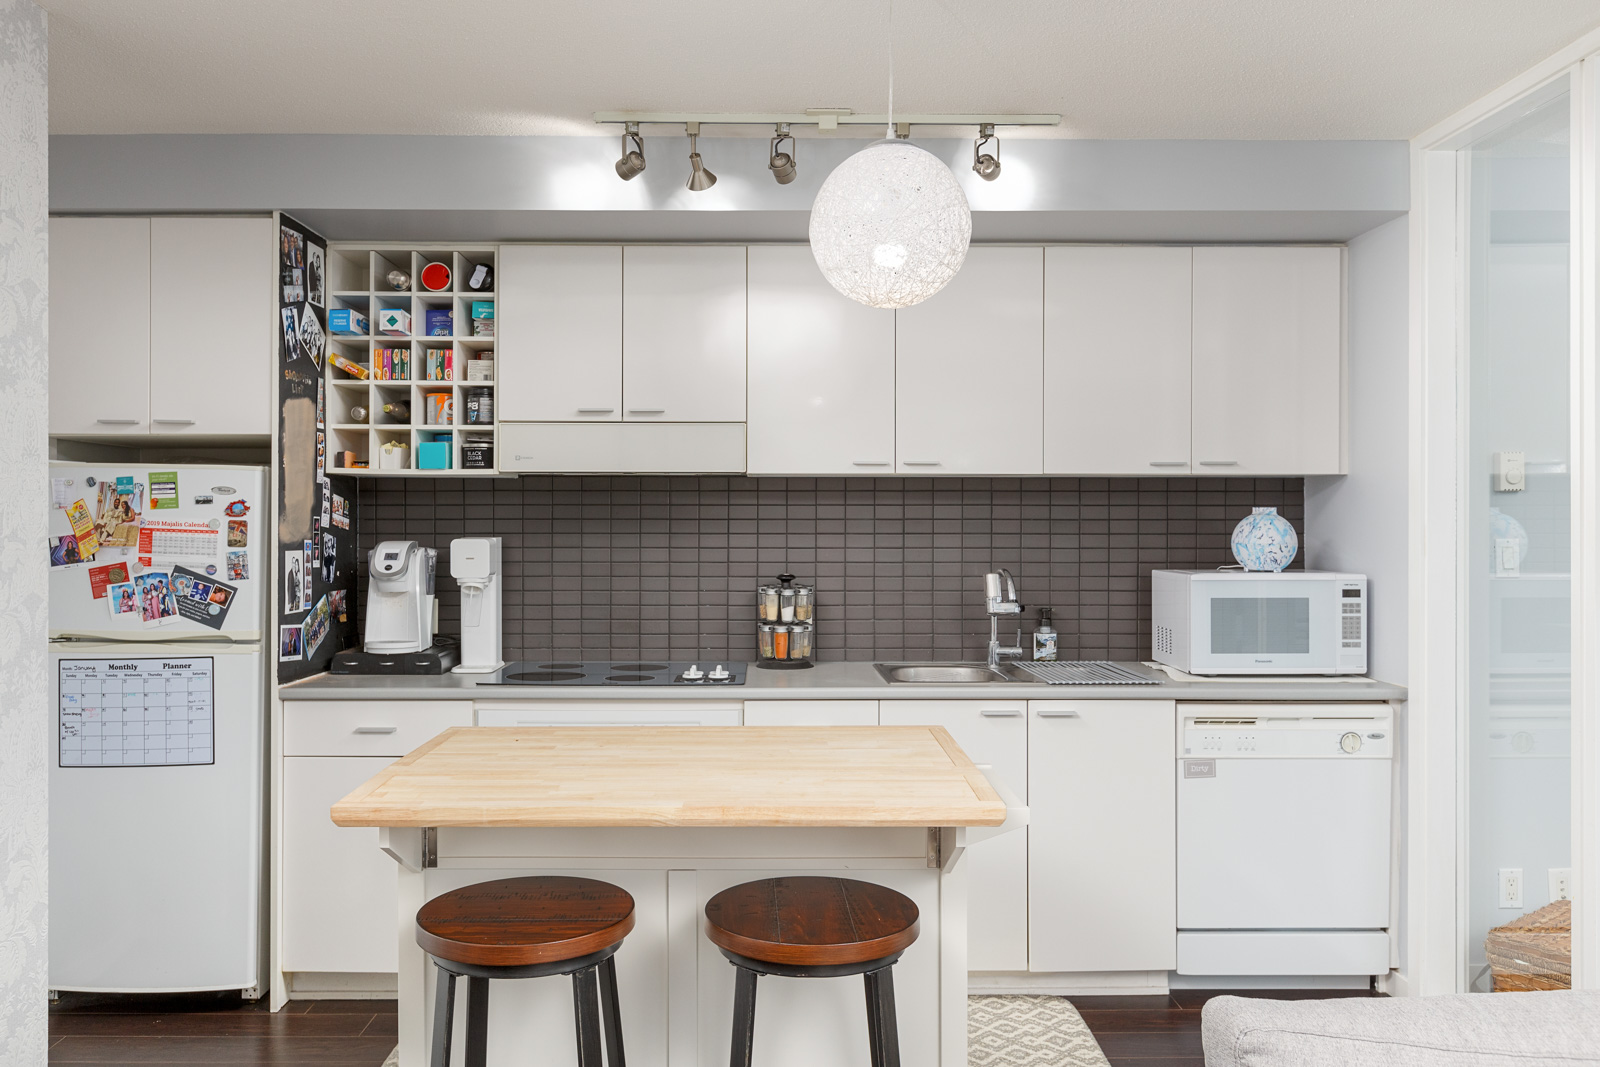 Kitchen in Downtown Vancouver rental condo with island and accompanying bar stools.